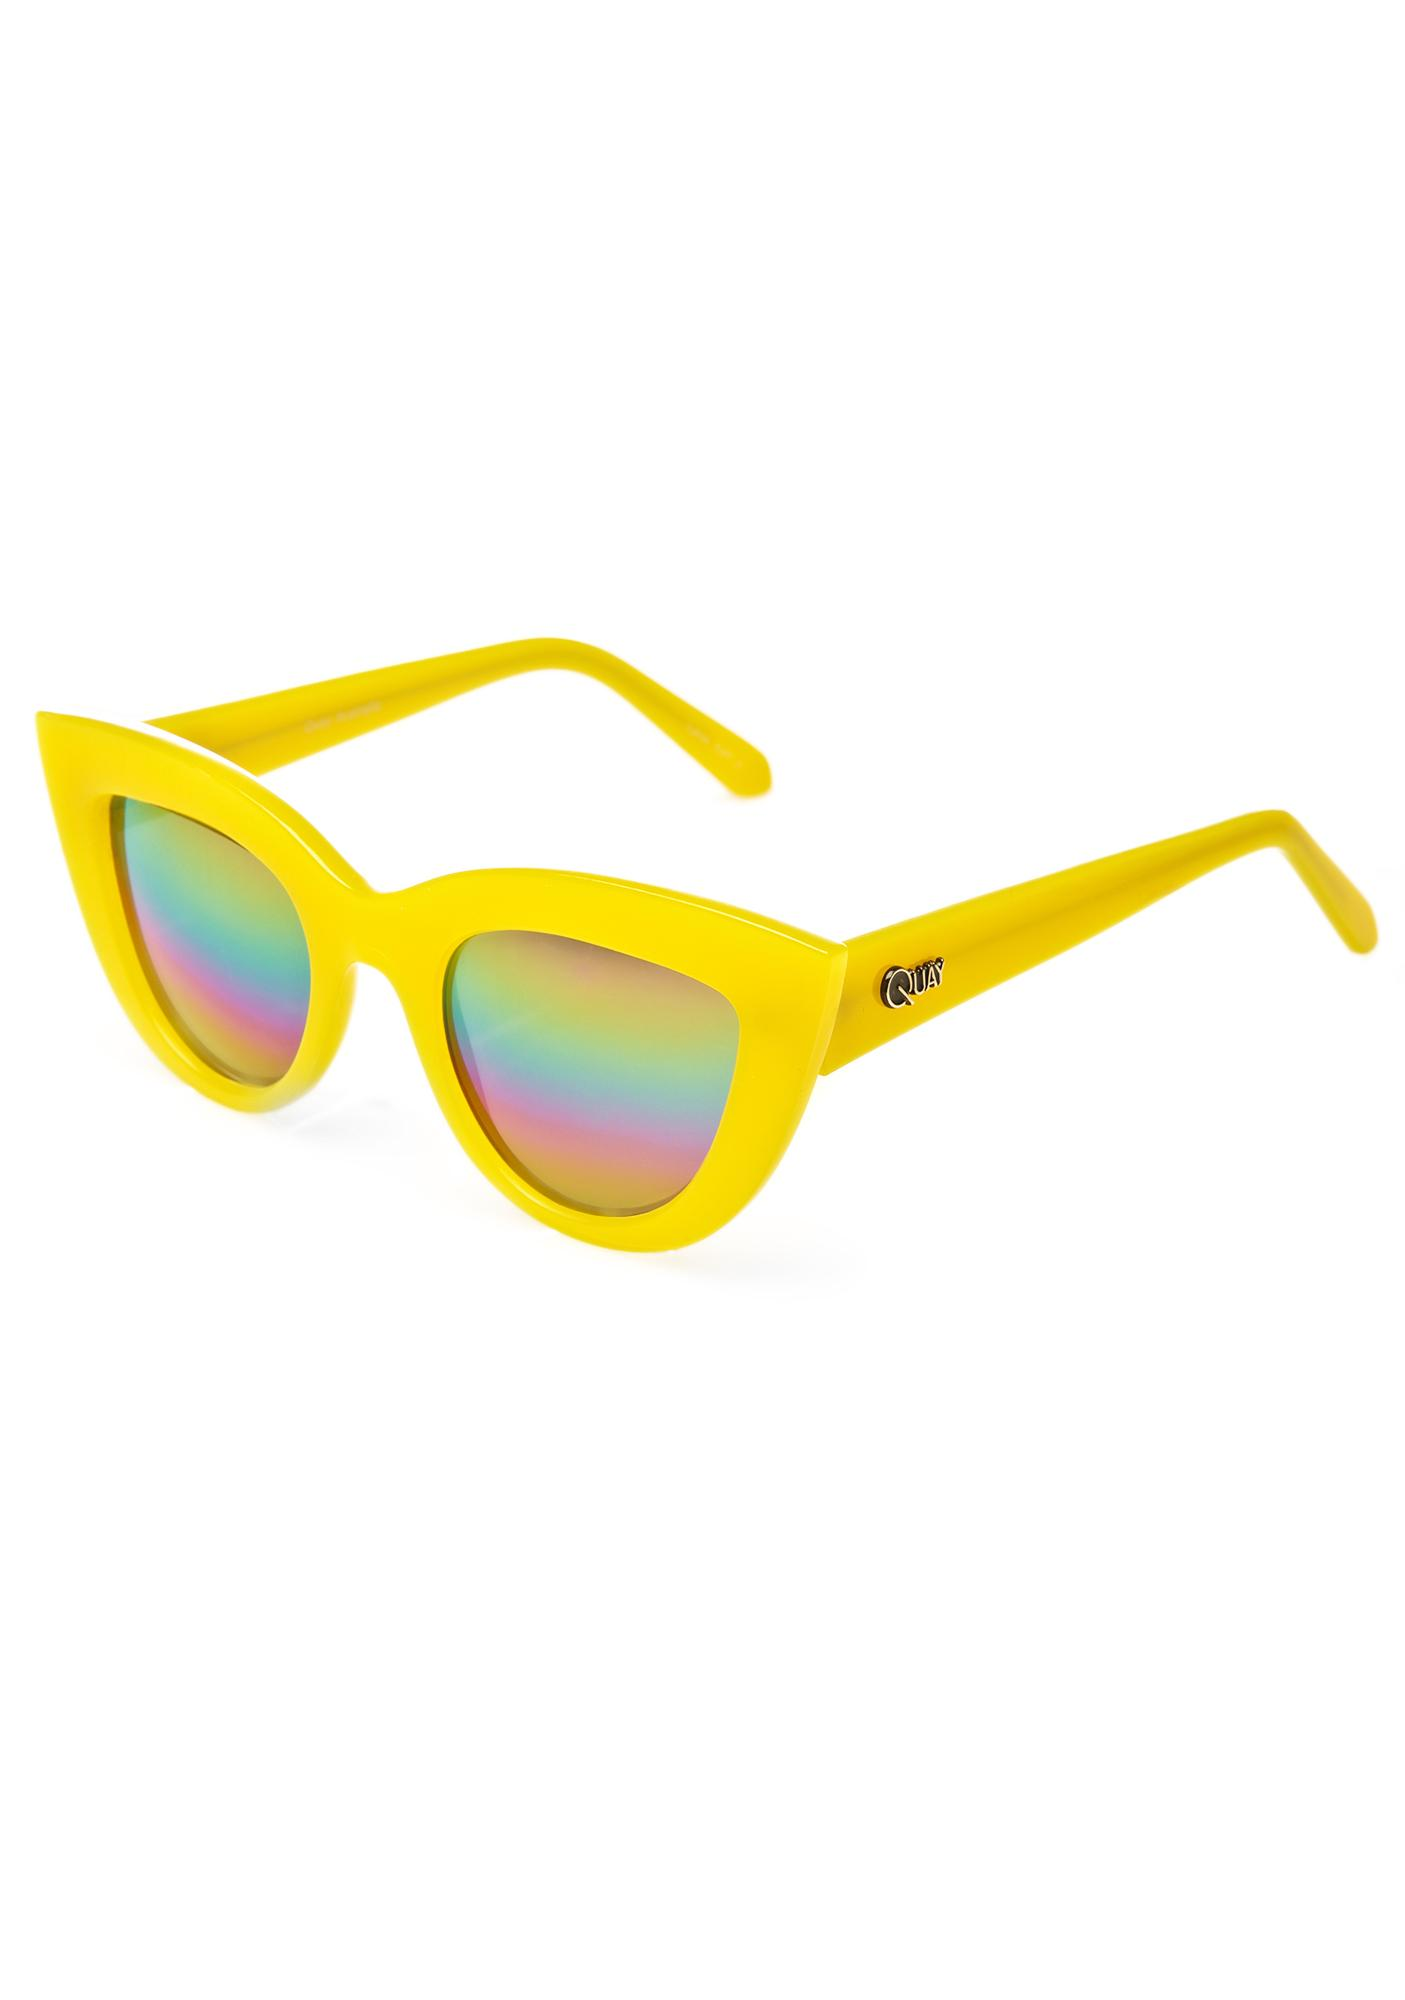 Quay Eyeware Rainbow Kitti Sunglasses